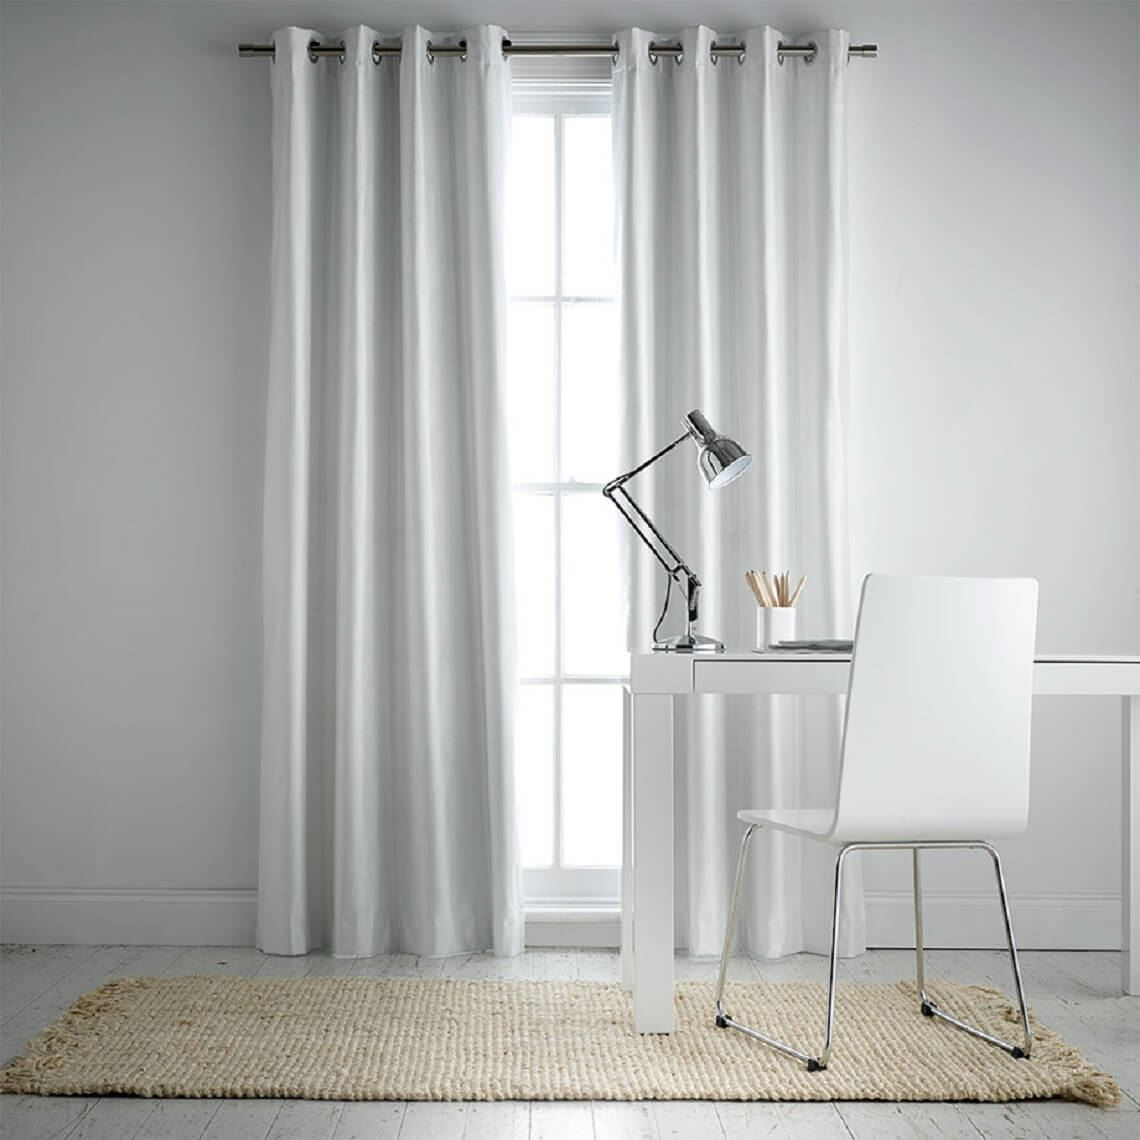 Aberdeen Blockout Eyelet Curtain Size W 140cm x D 5cm x H 230cm in White 100% Polyester/Acrylic Flock Coating/Stainless Steel Freedom by Freedom, a Curtains for sale on Style Sourcebook